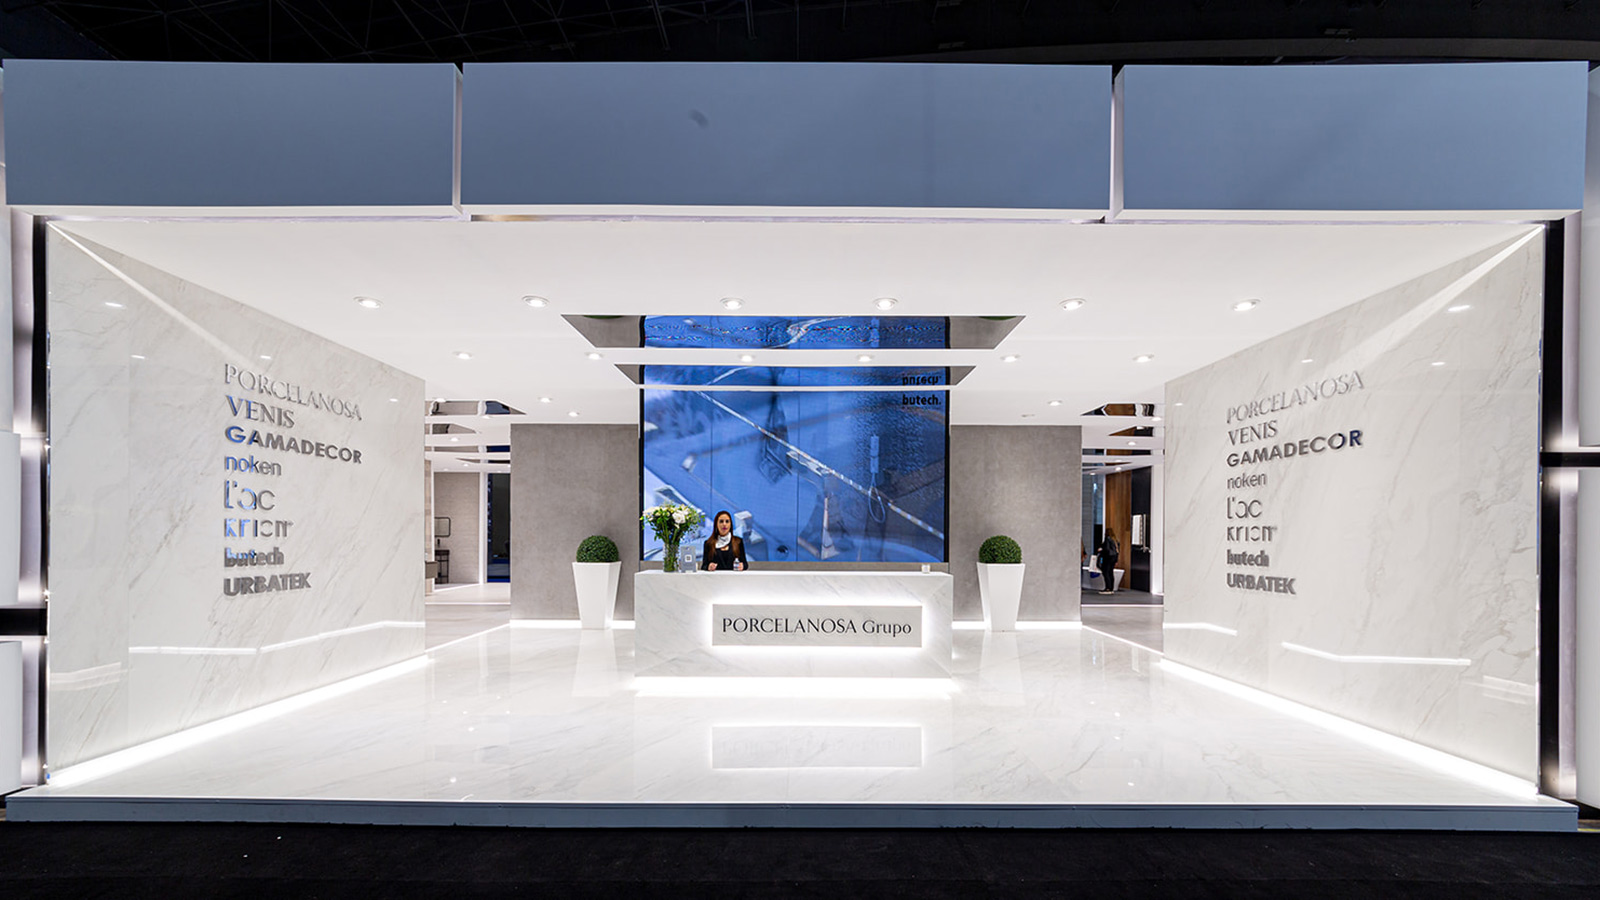 PORCELANOSA Grupo takes part in the first Obra Blanca México